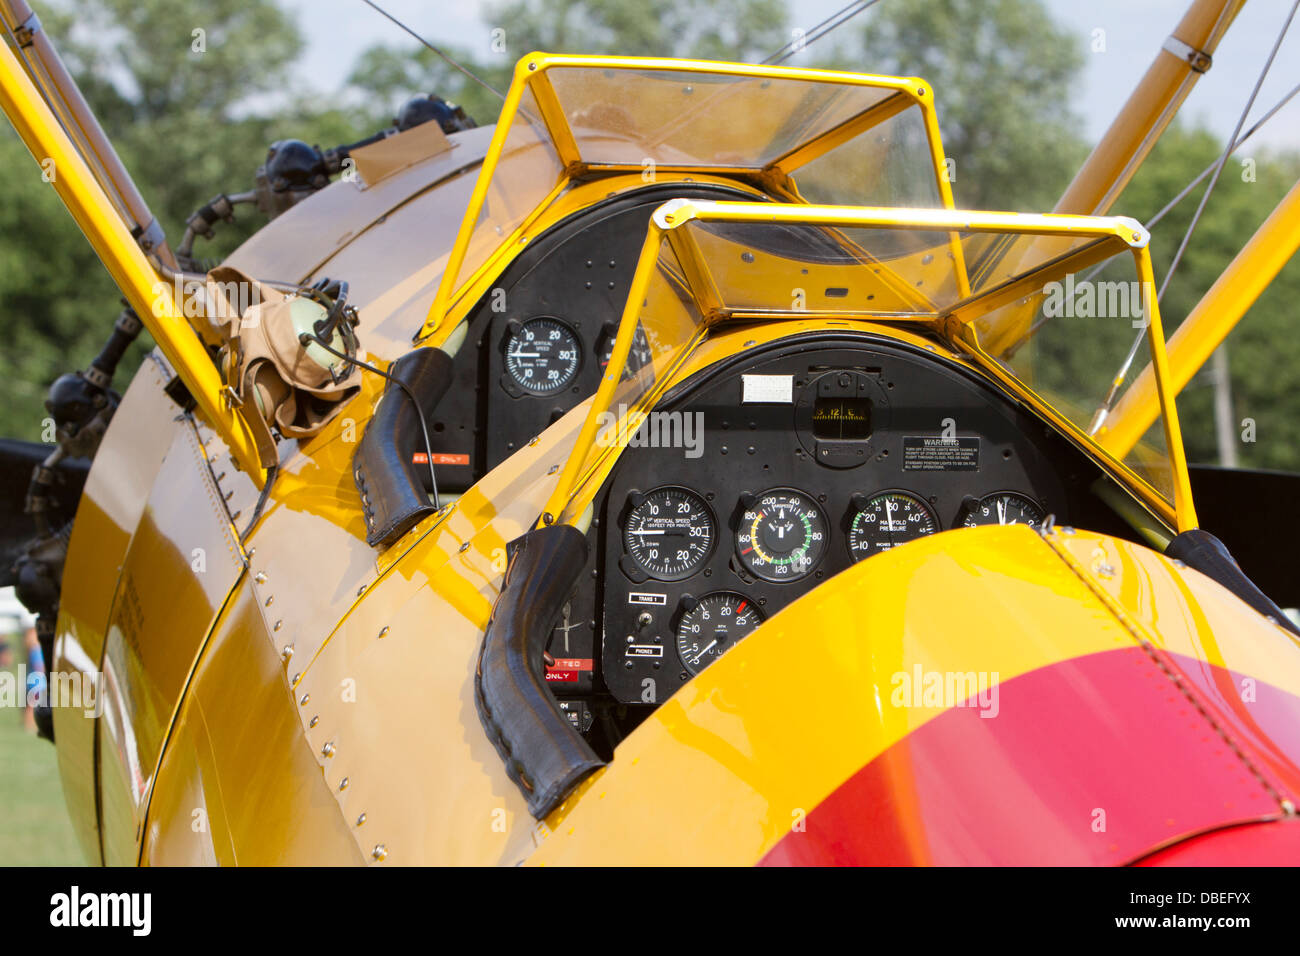 Boeing N2S Stearman (PT-17) cockpit and instrument panel. - Stock Image